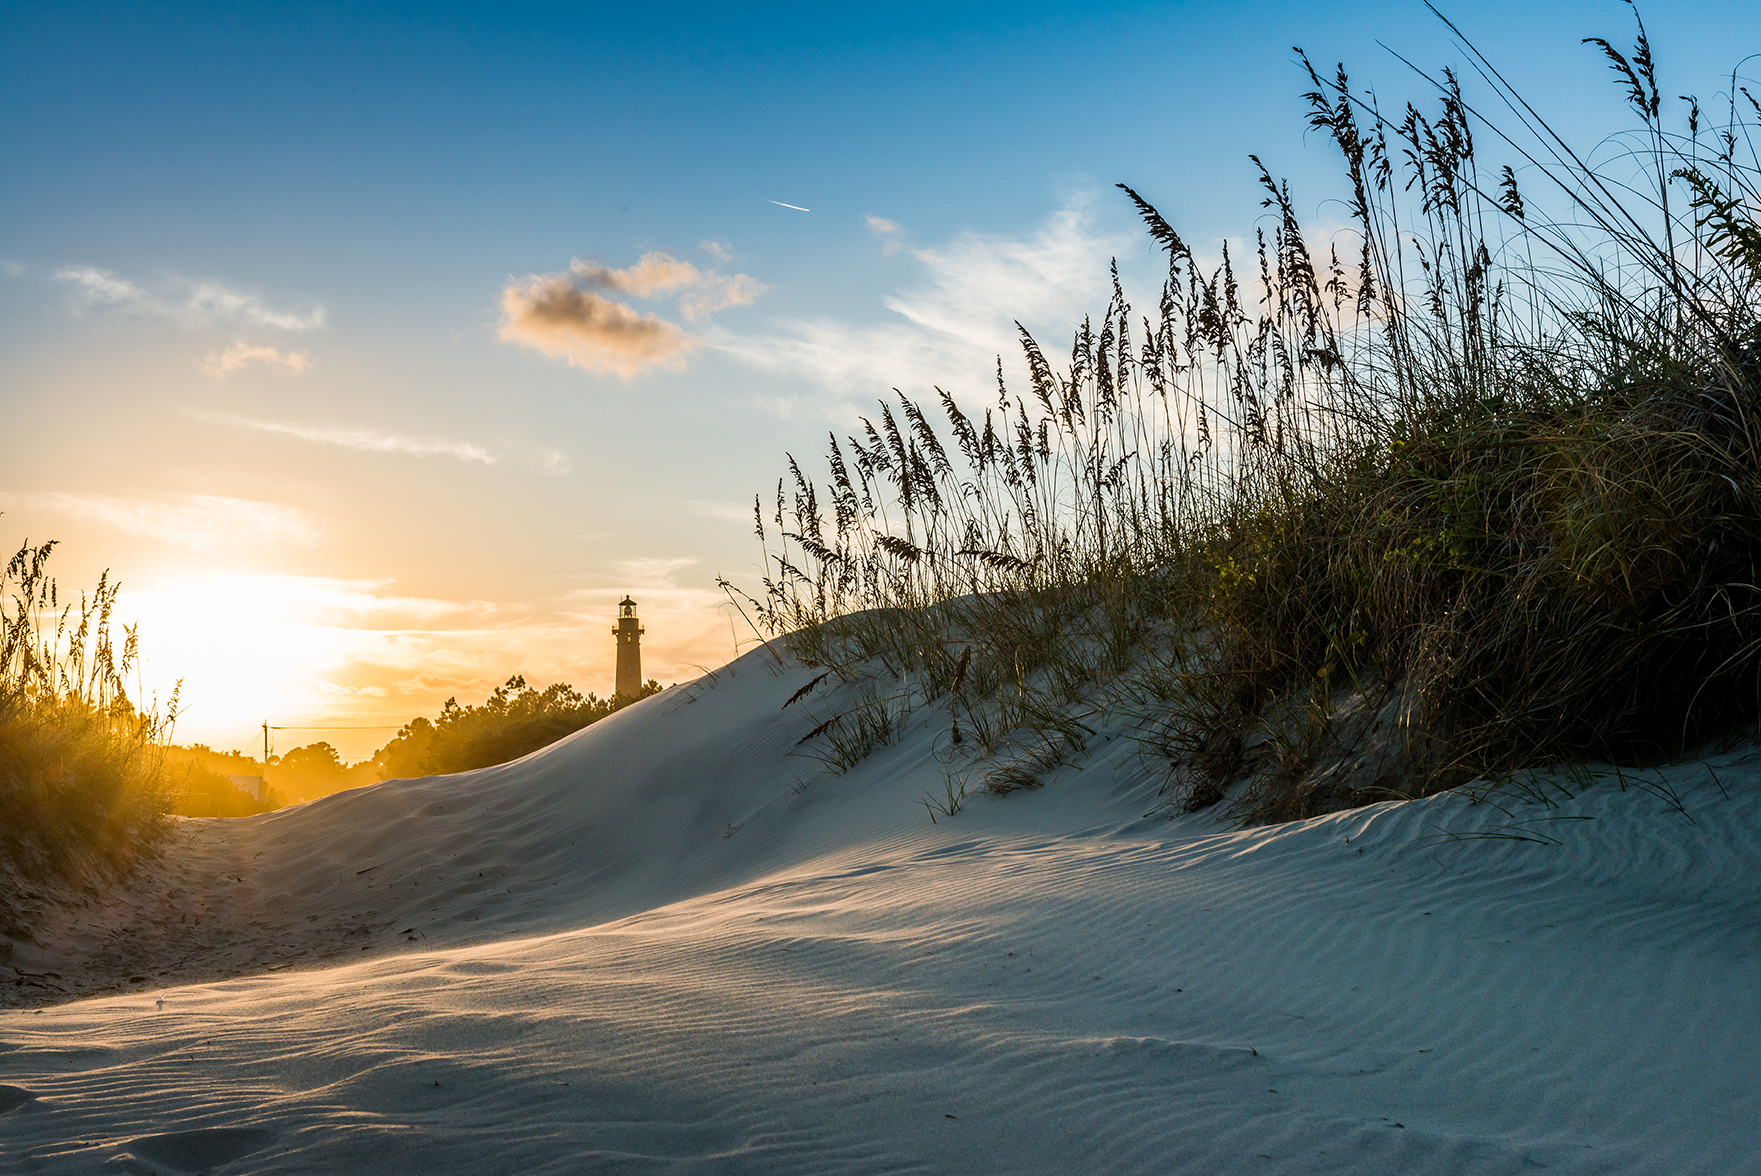 Recycled Christmas trees help form area sand dunes